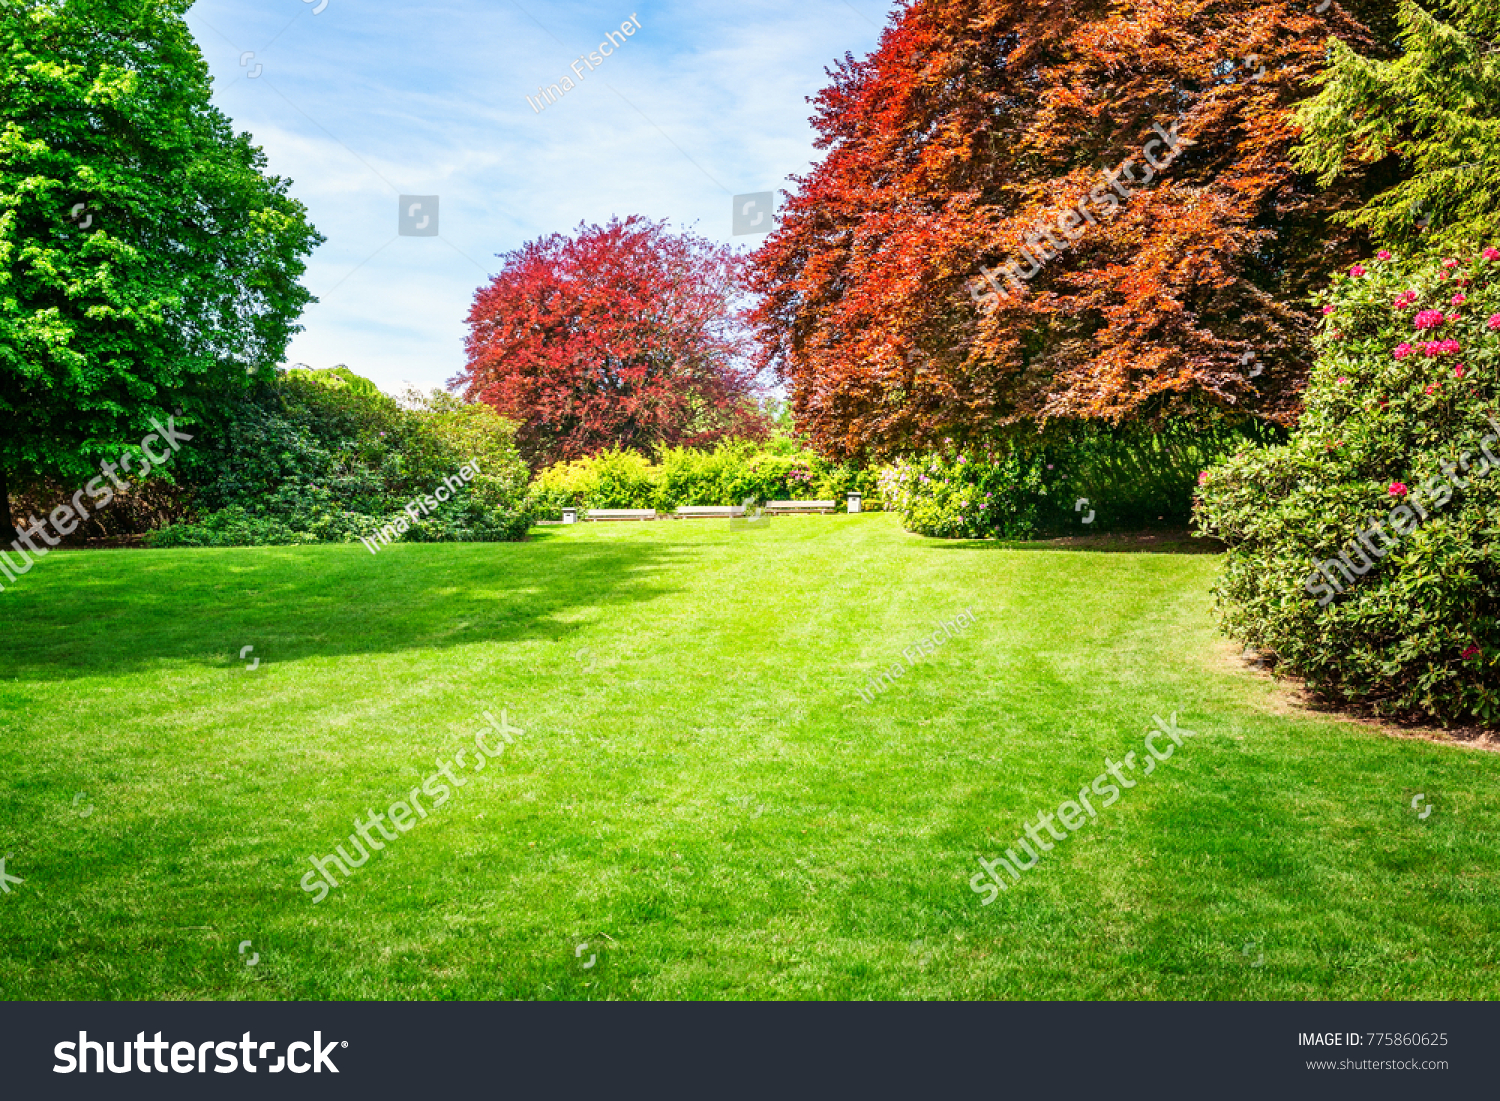 Spring Green Park City Park Blooming Stock Photo (Download Now ...